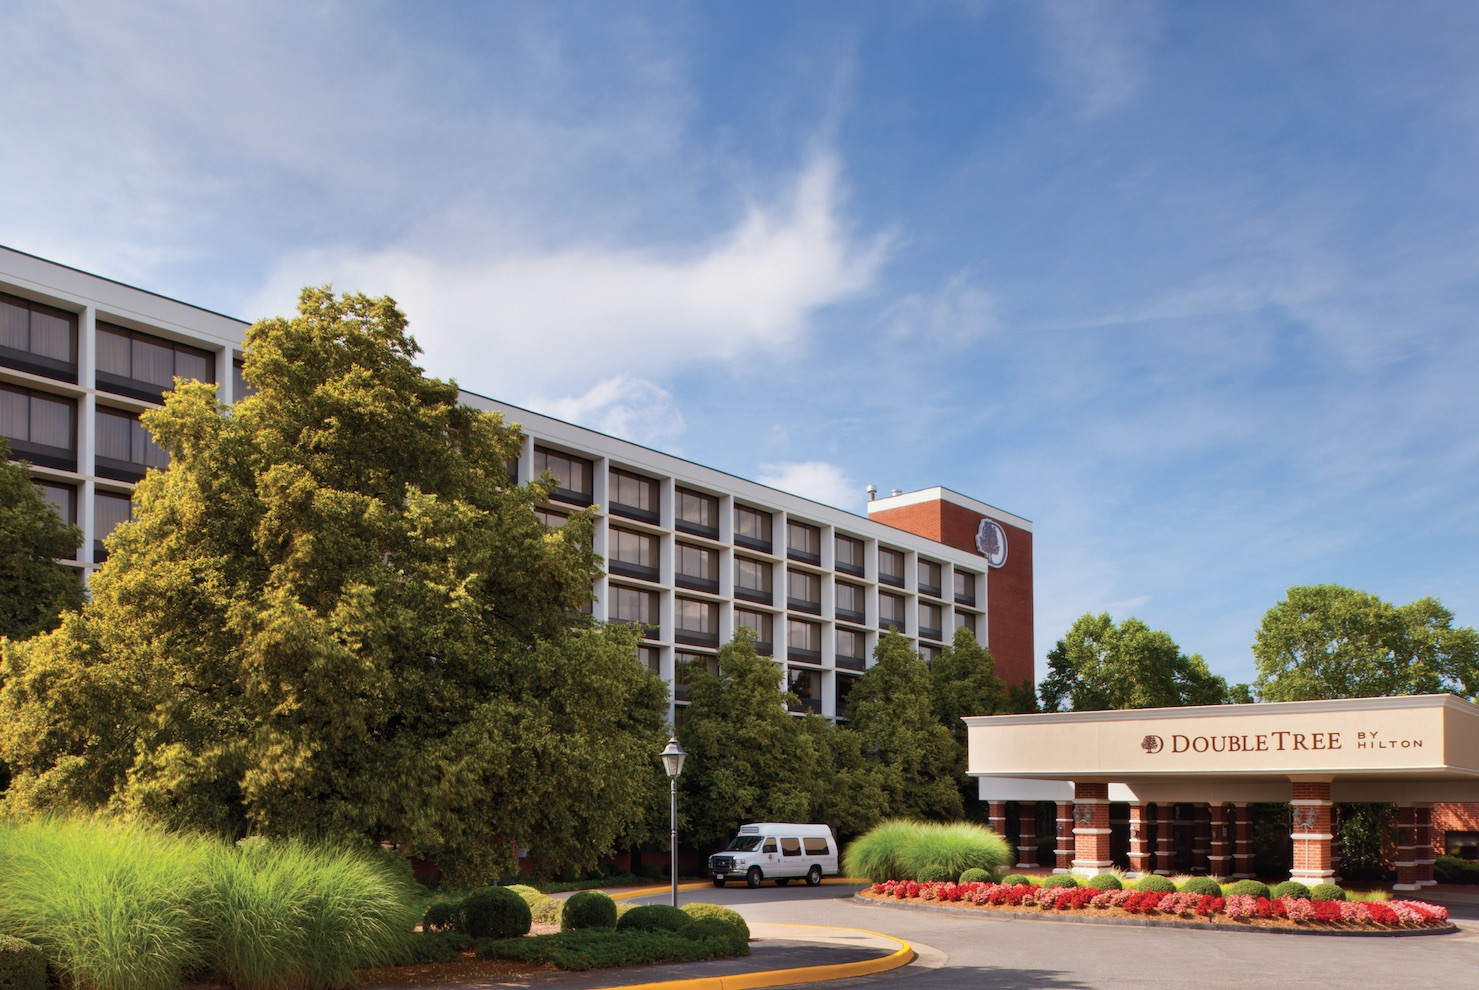 doubletree by hilton charlottesville charlottesville va. Black Bedroom Furniture Sets. Home Design Ideas